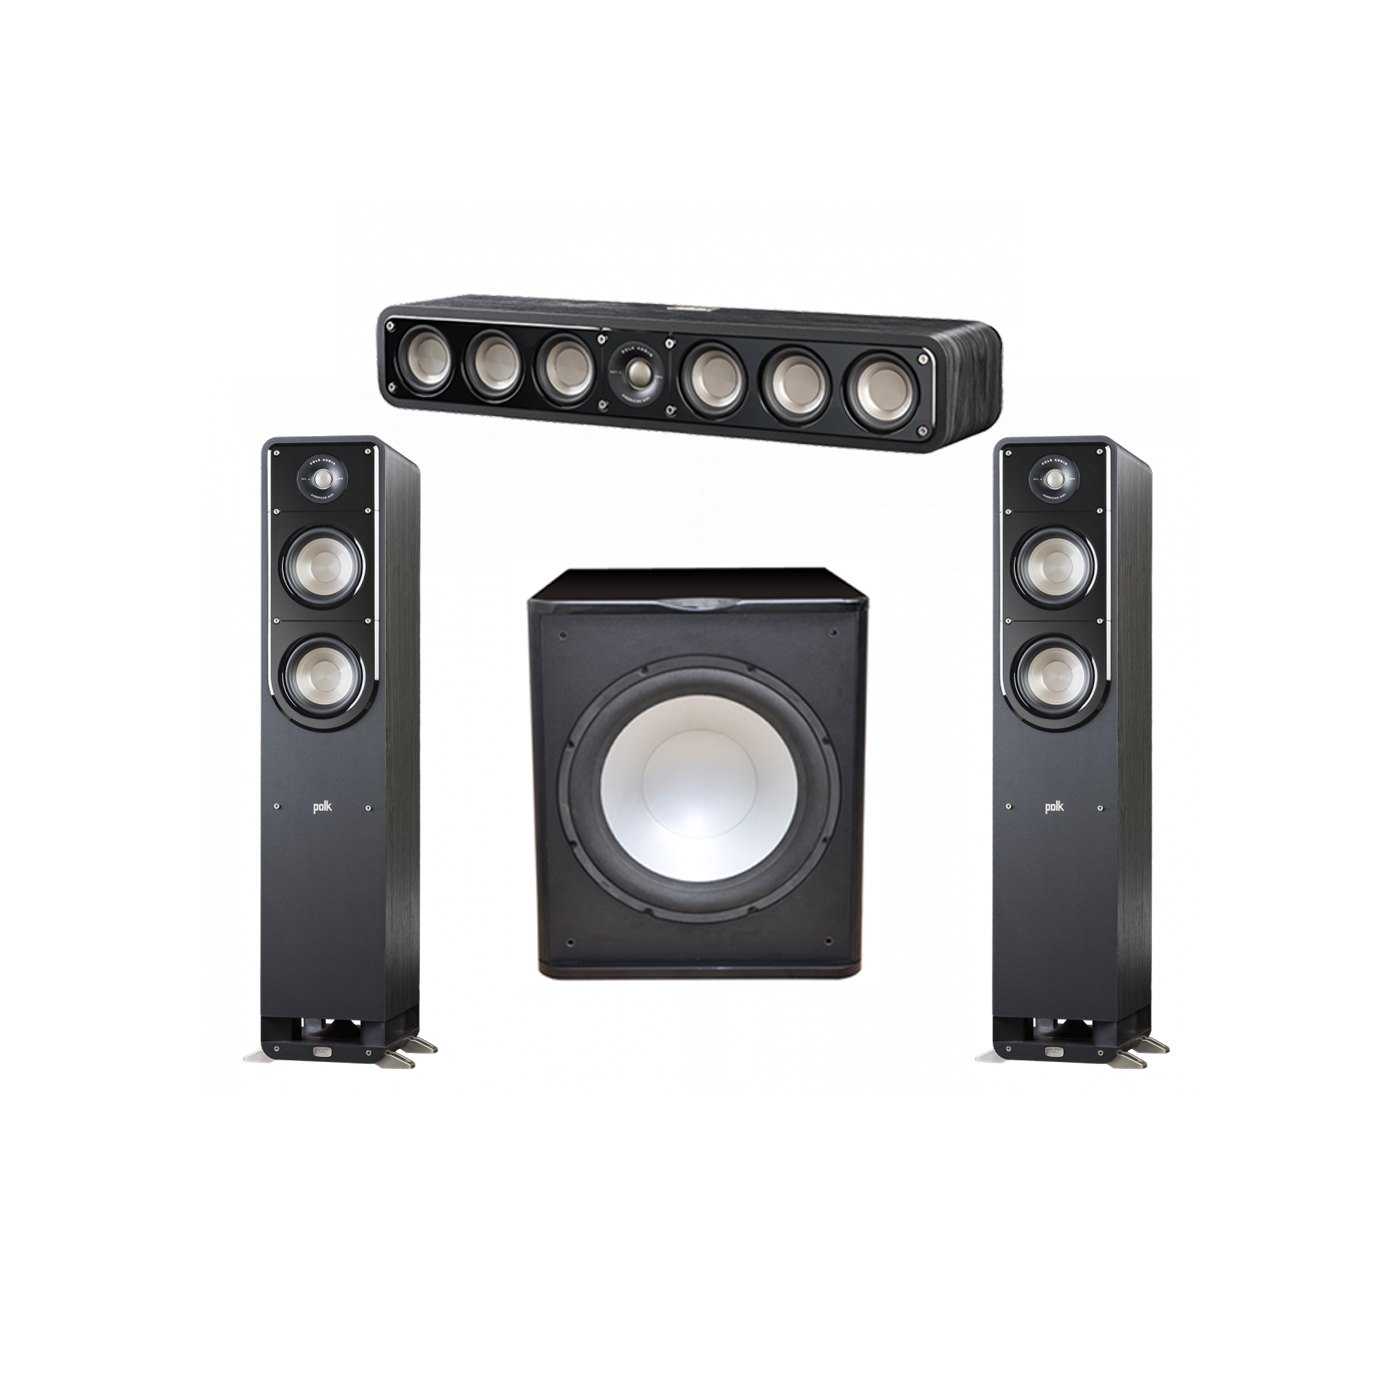 Polk Audio Signature 3.1 System with 2 S50 Tower Speaker, 1 Polk S35 Center Speaker, 1 Premier Acoustic PA-150 Powered Subwoofer